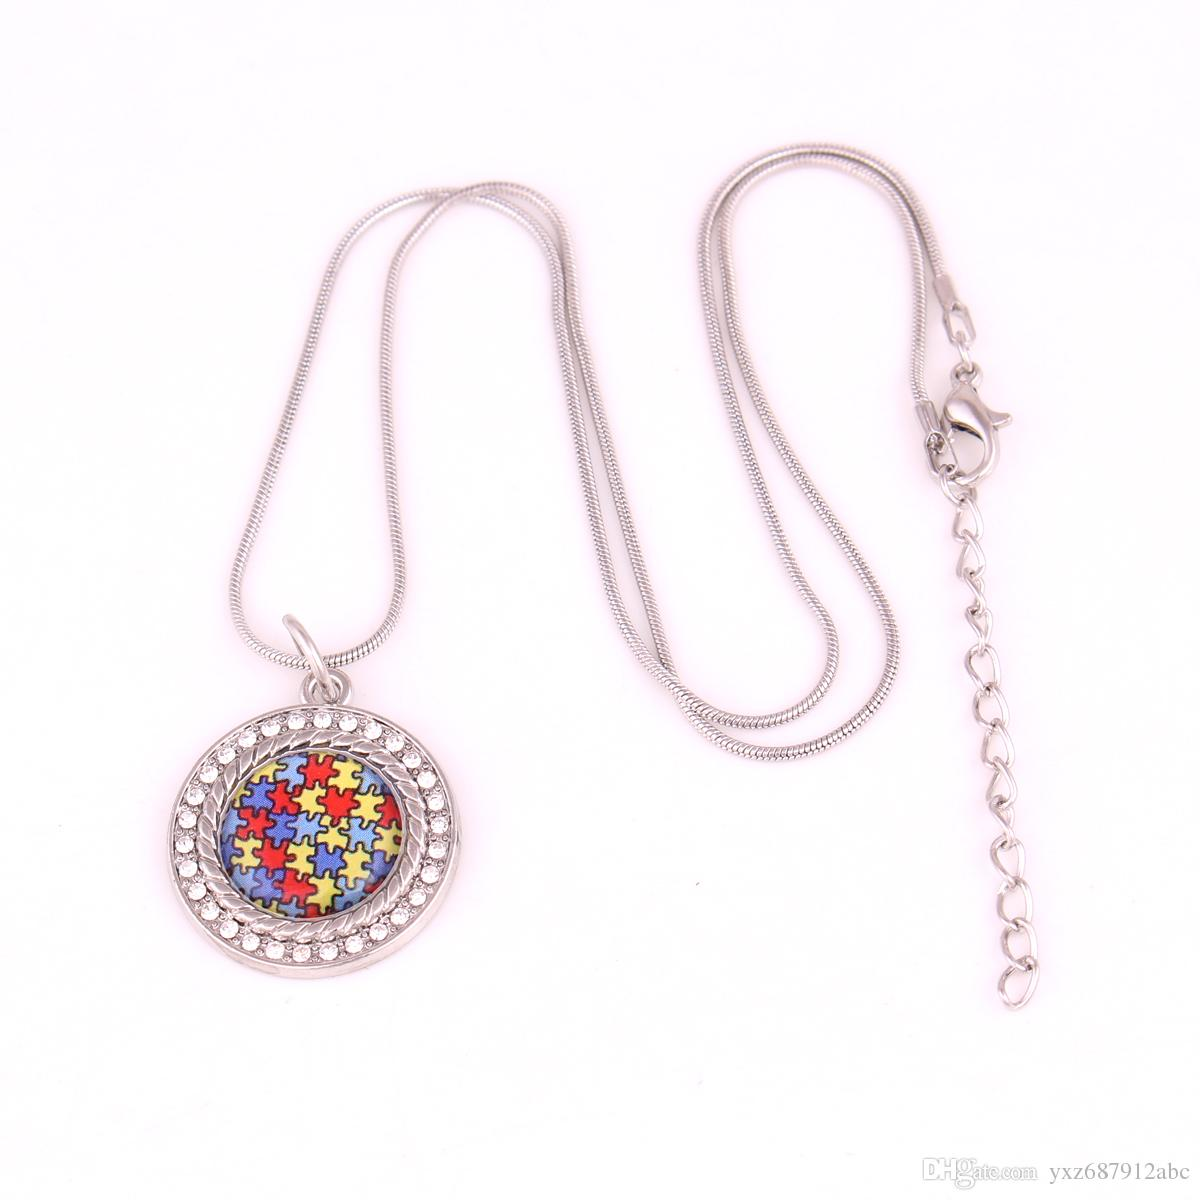 Drop Shipping Autism Hope Jewelry Crystal puzzle Piece Round Pendant with Snake Chain necklace Autism Awareness Jewelry